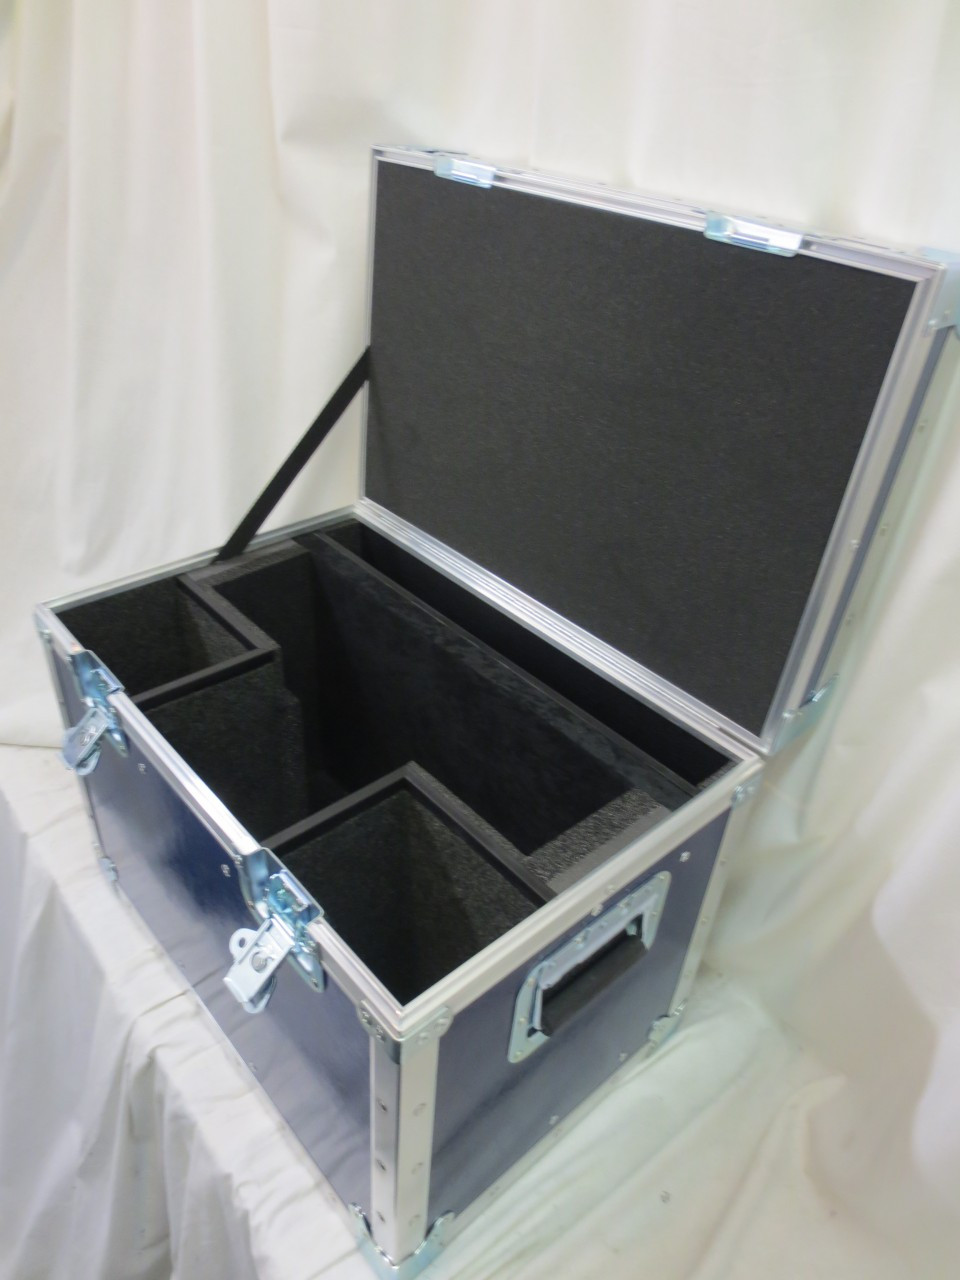 Sony Monitor BVM-1741 Shipping Case